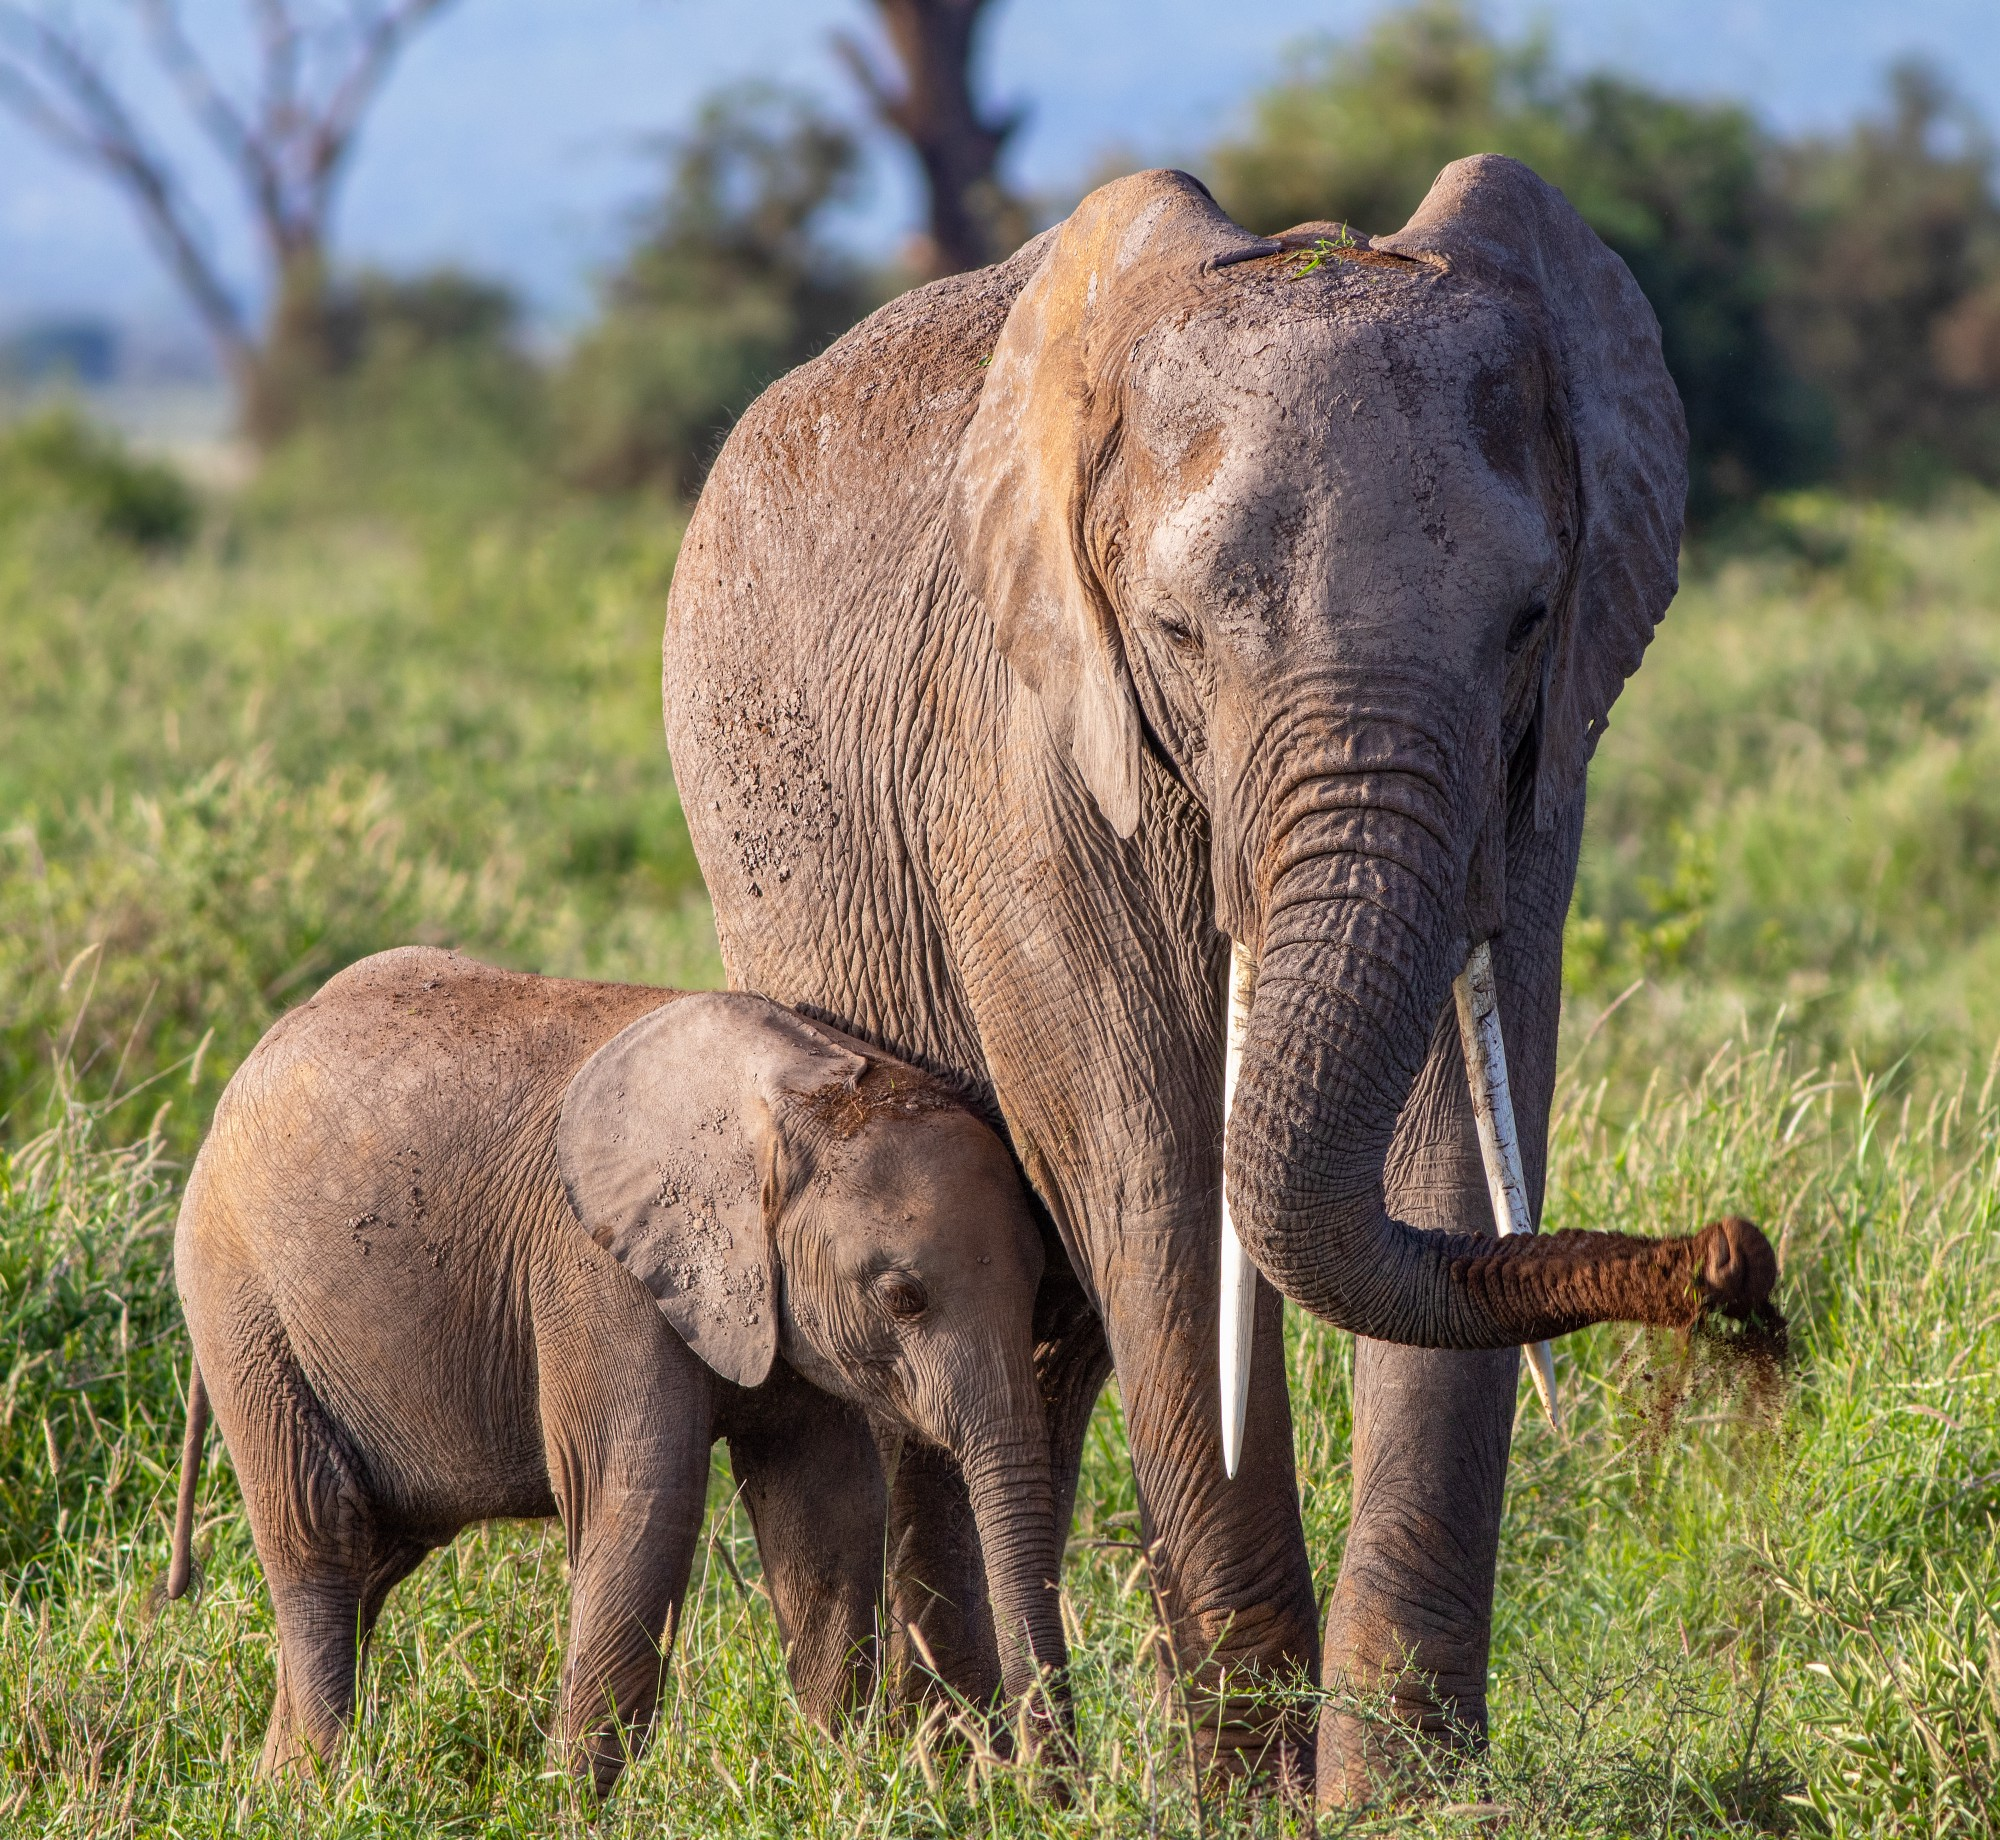 an adult elephant and a baby